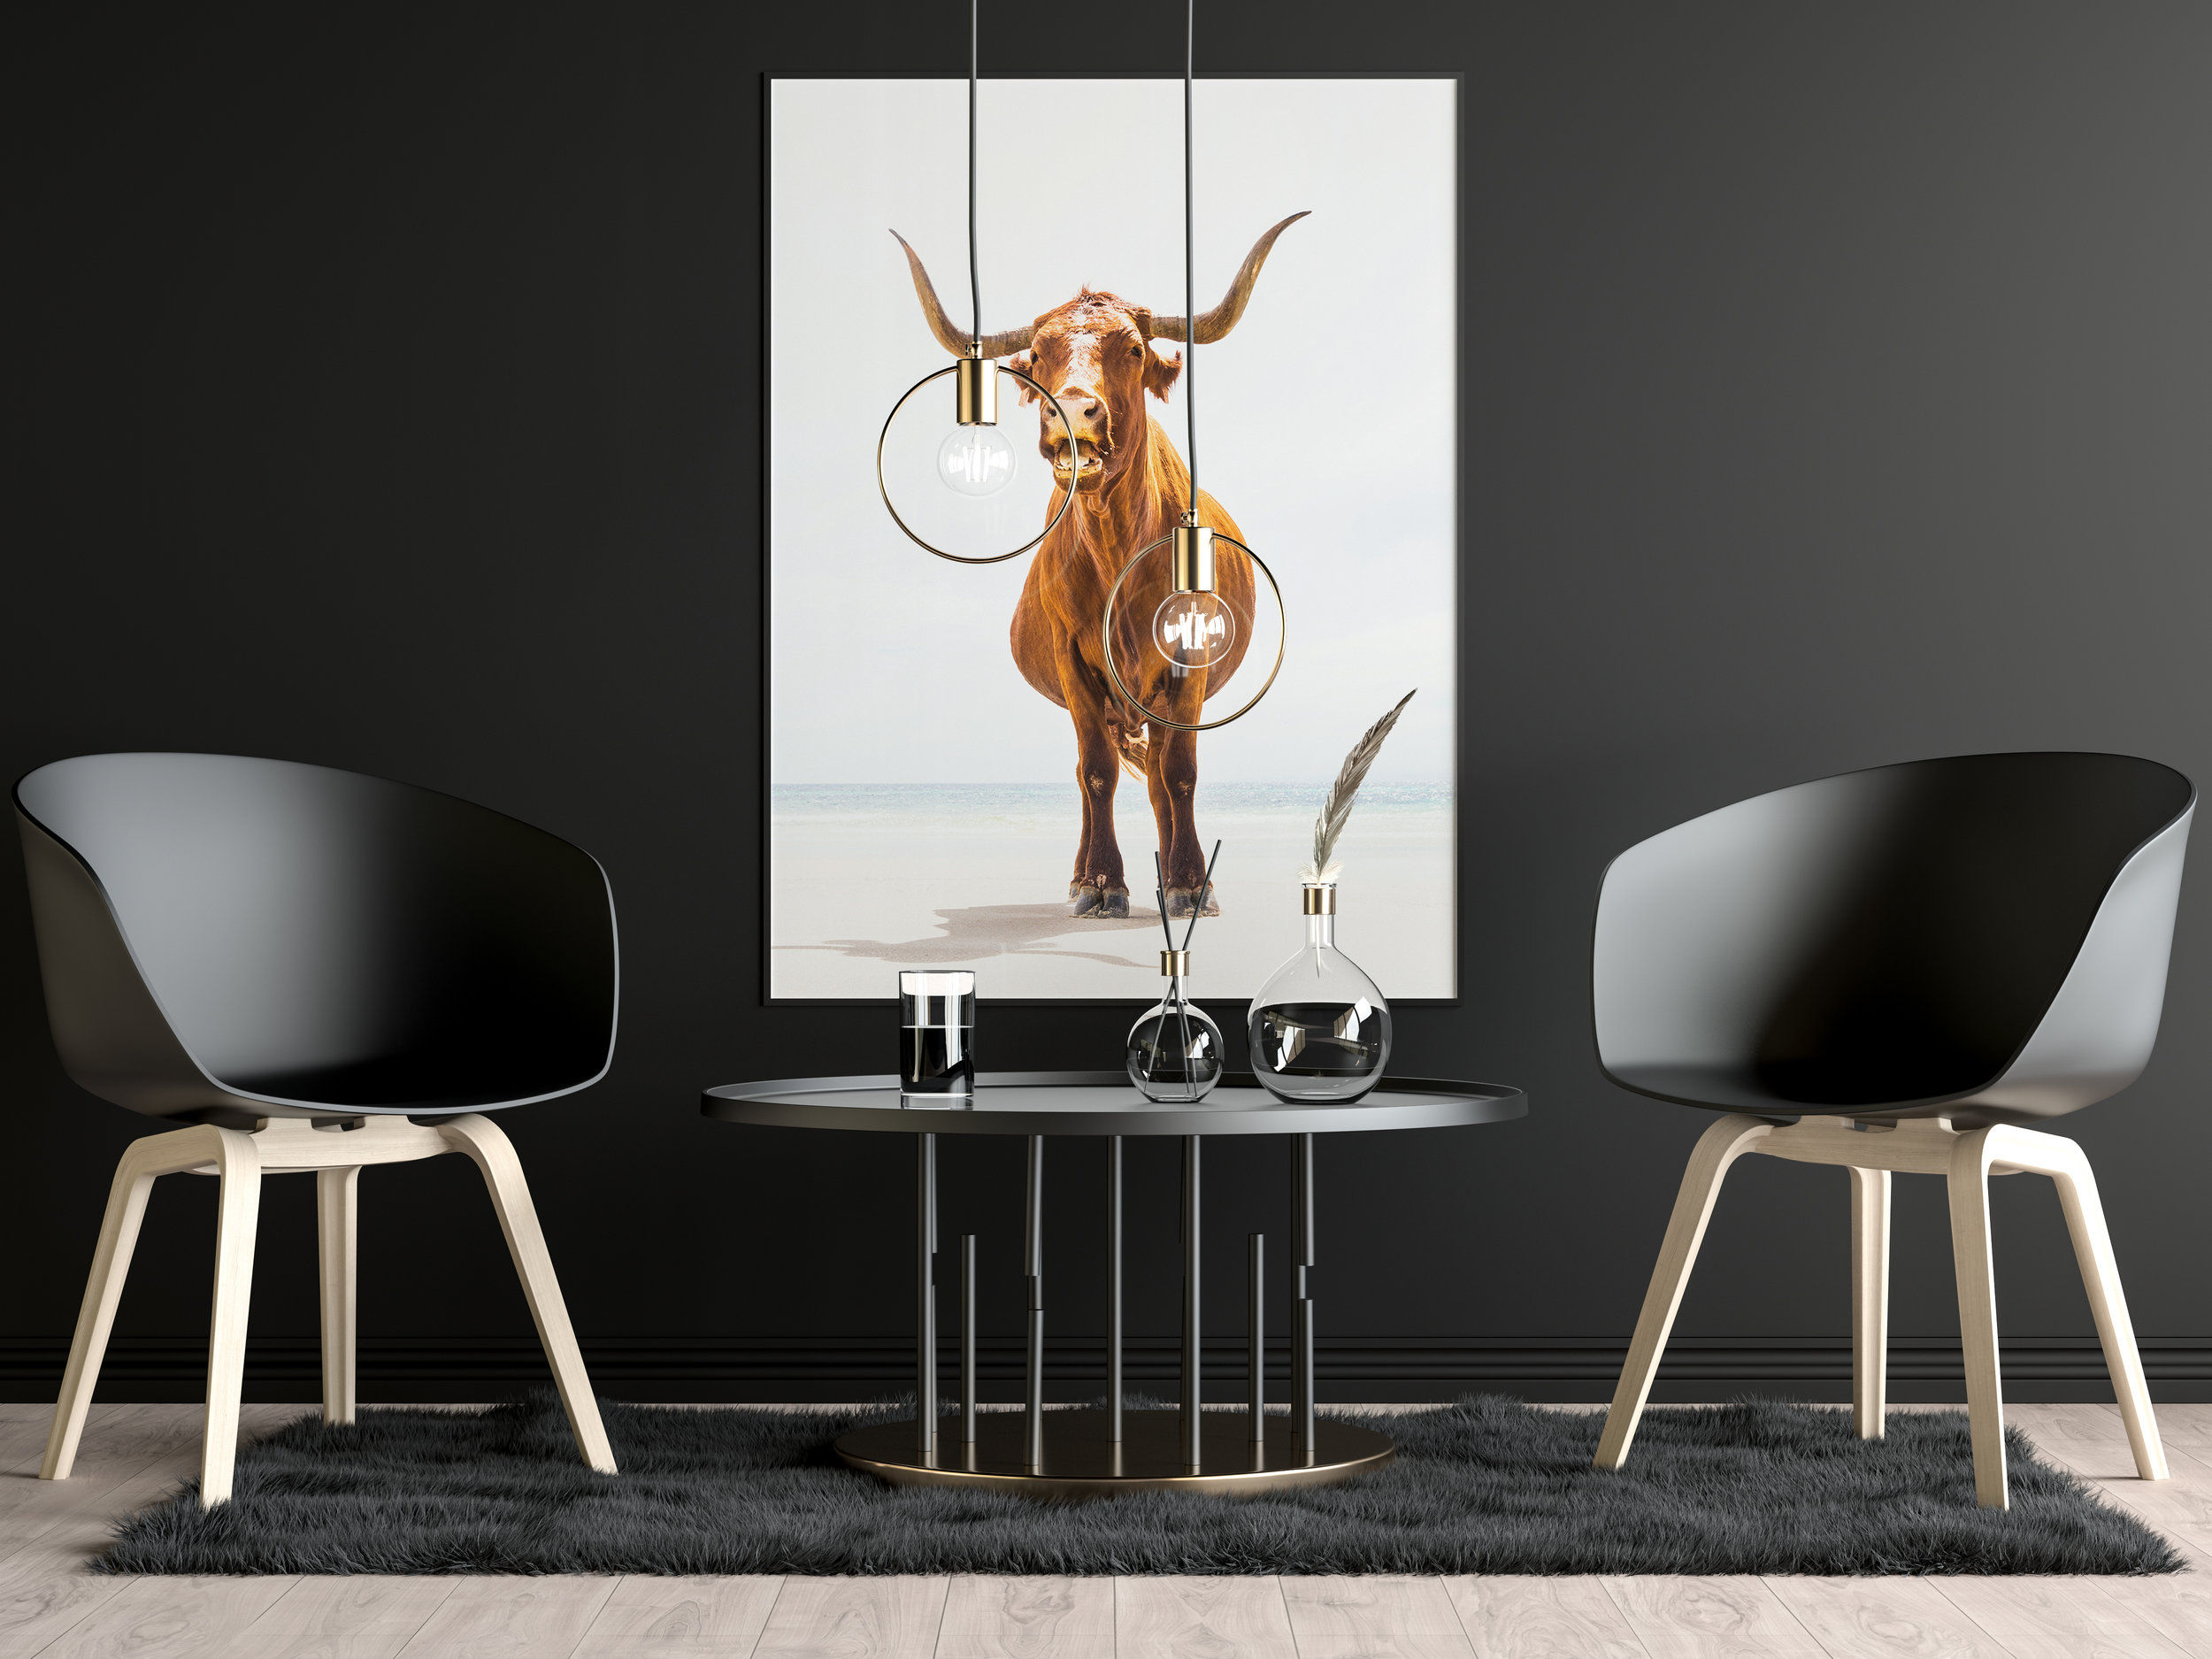 'Beach Cow' Photographic print by Andrew Lever